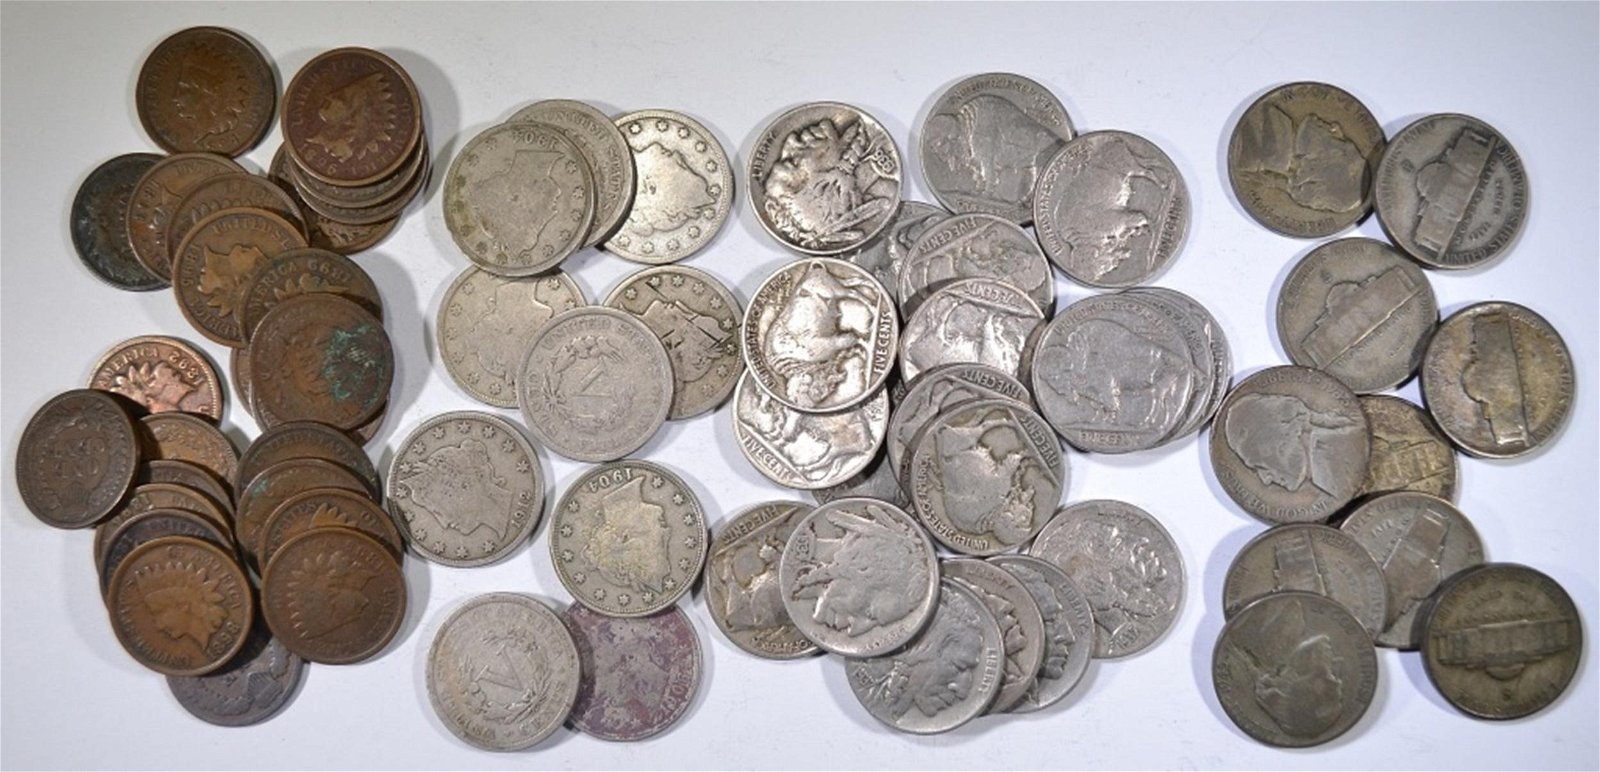 U.S. COIN COLLECTOR LOT: